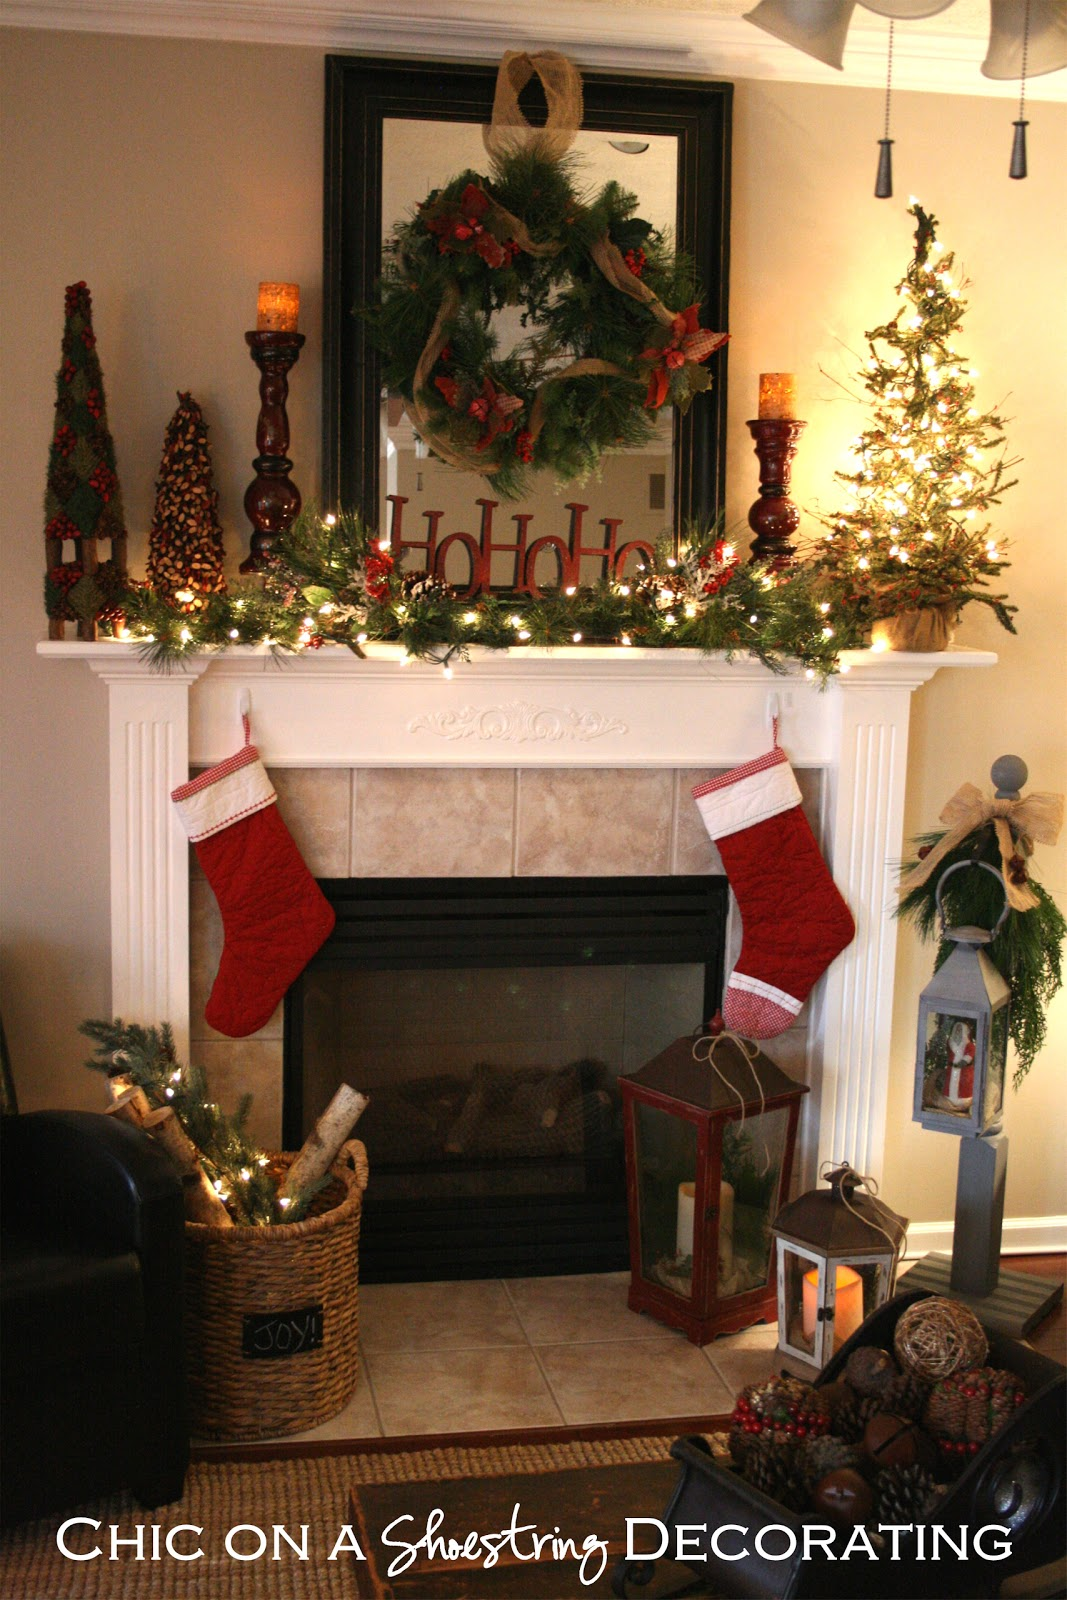 Outfitting a mantel for Christmas doesn't have to be a daunting task. Like any other aspect of holiday decorating, it's simply about paying attention to detail and, more importantly, showcasing your .